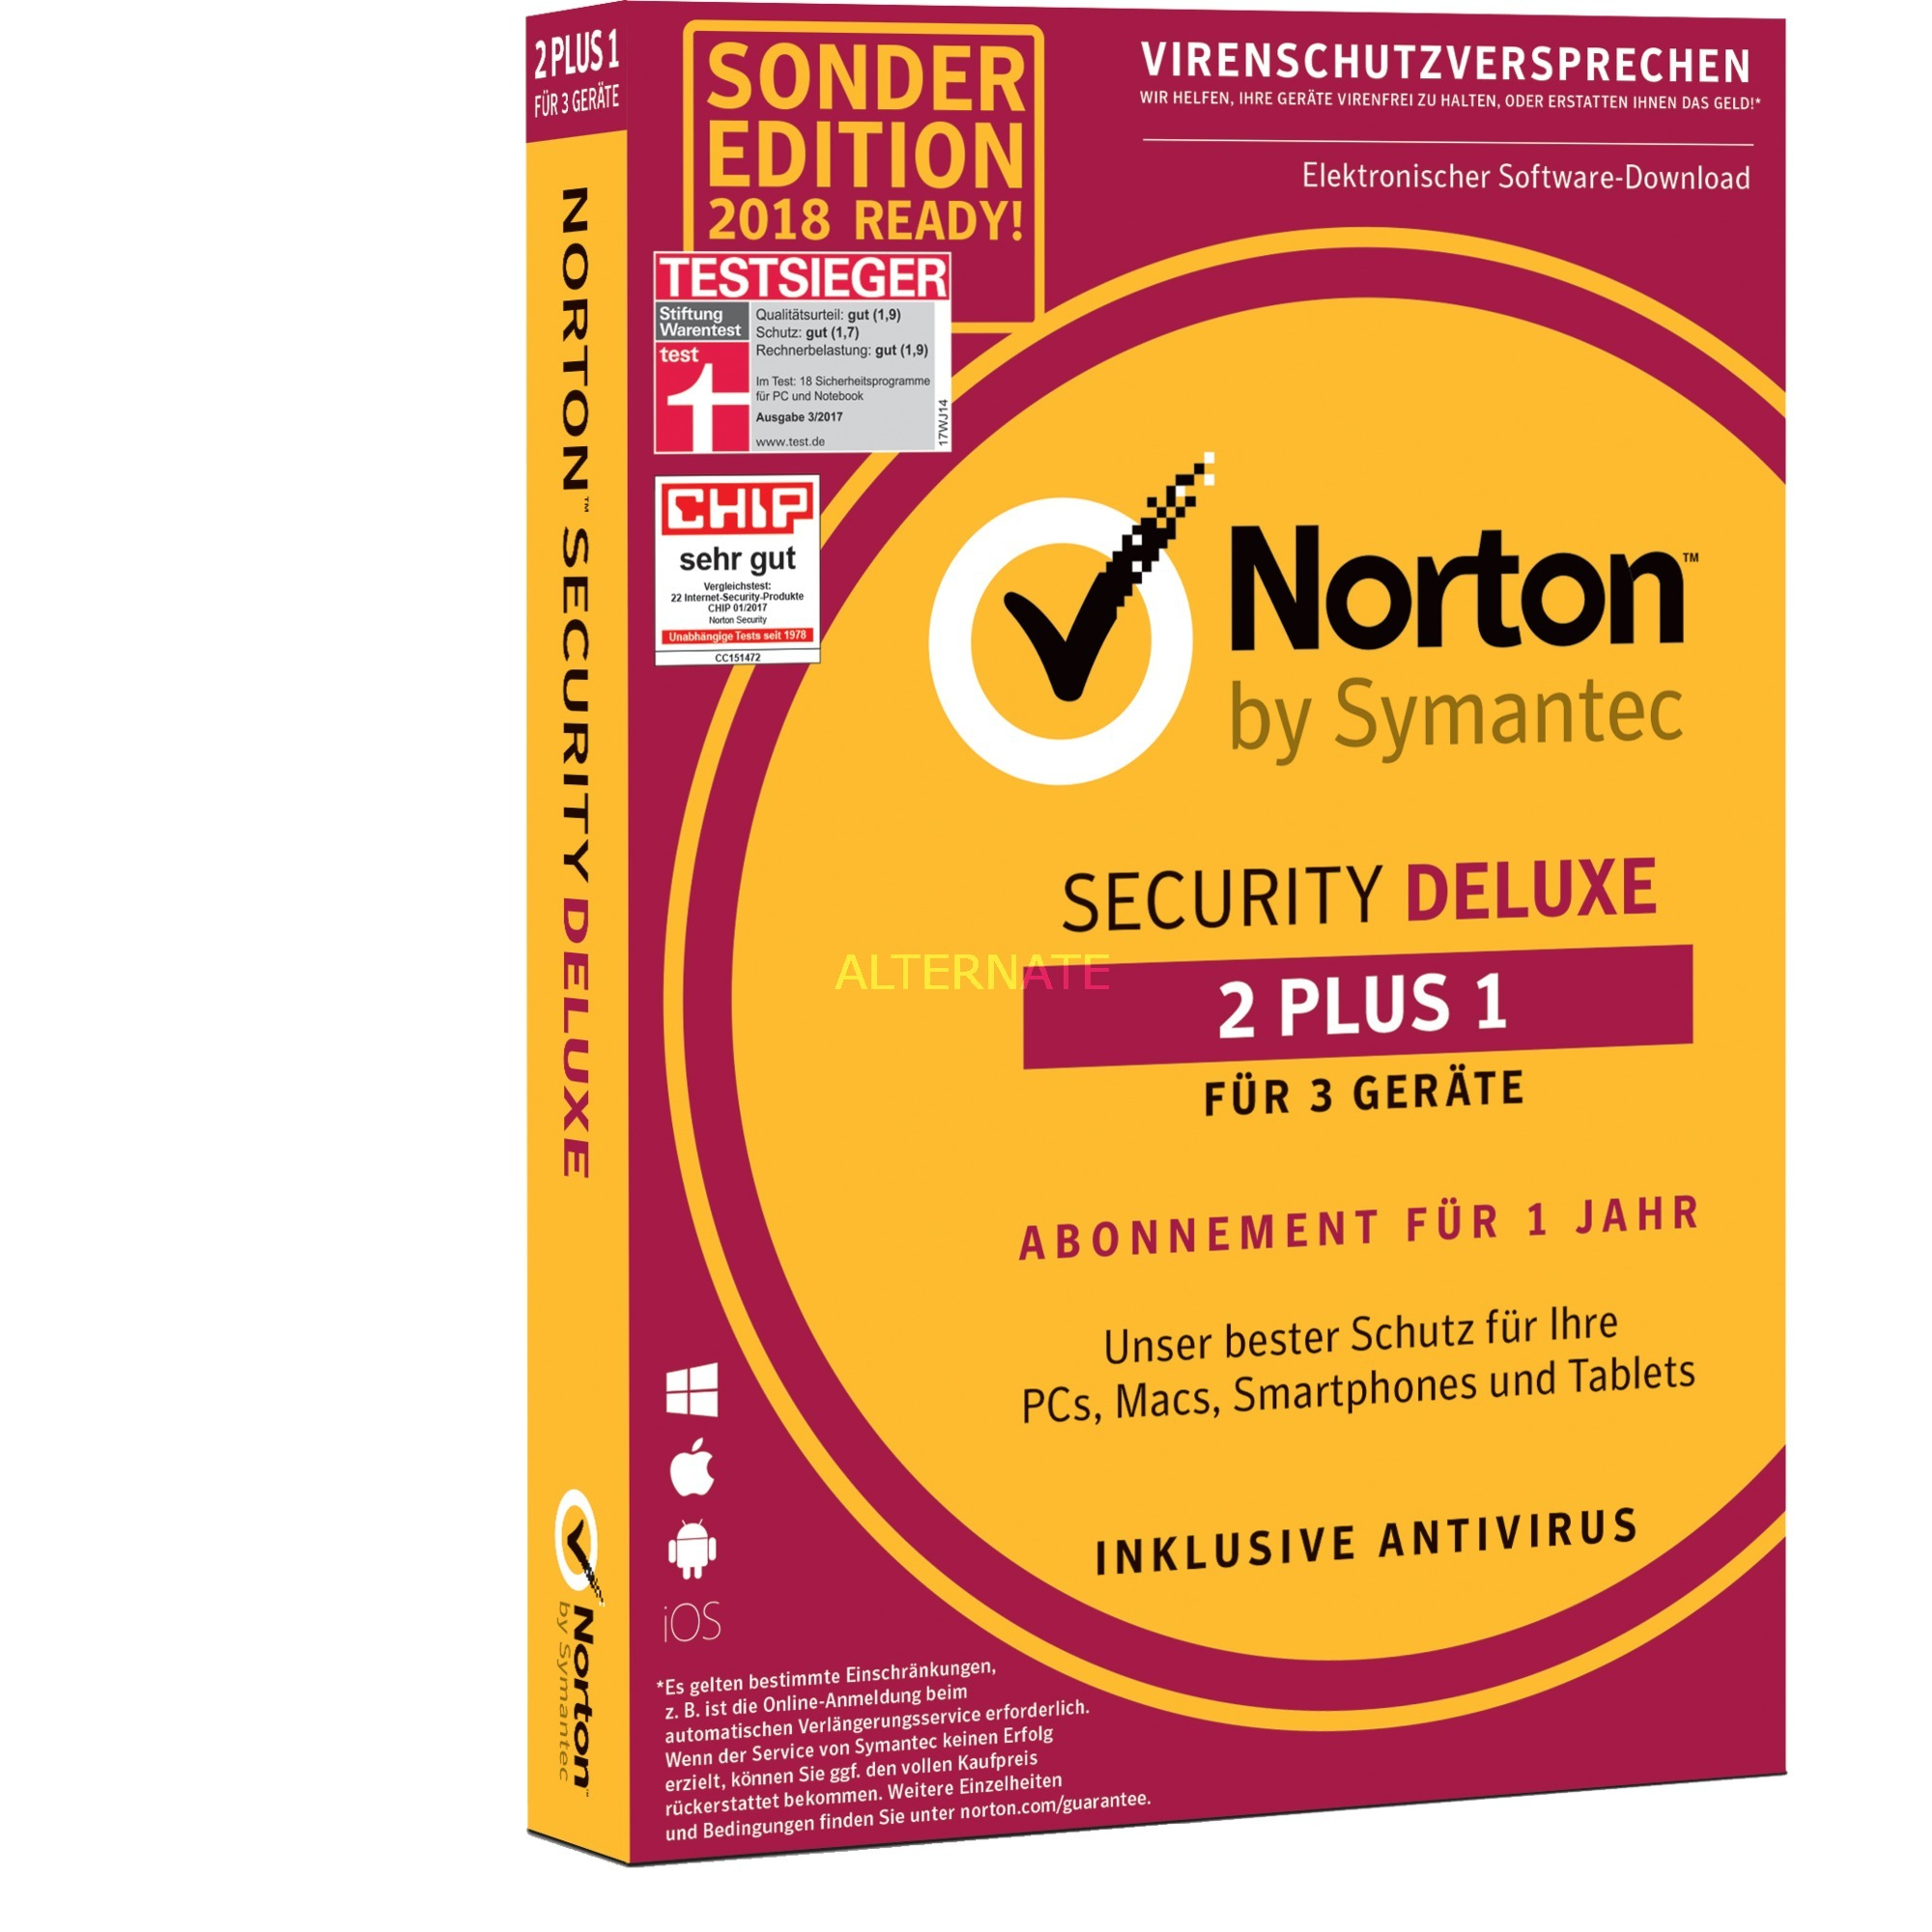 Security Deluxe 2+1 Device, Software